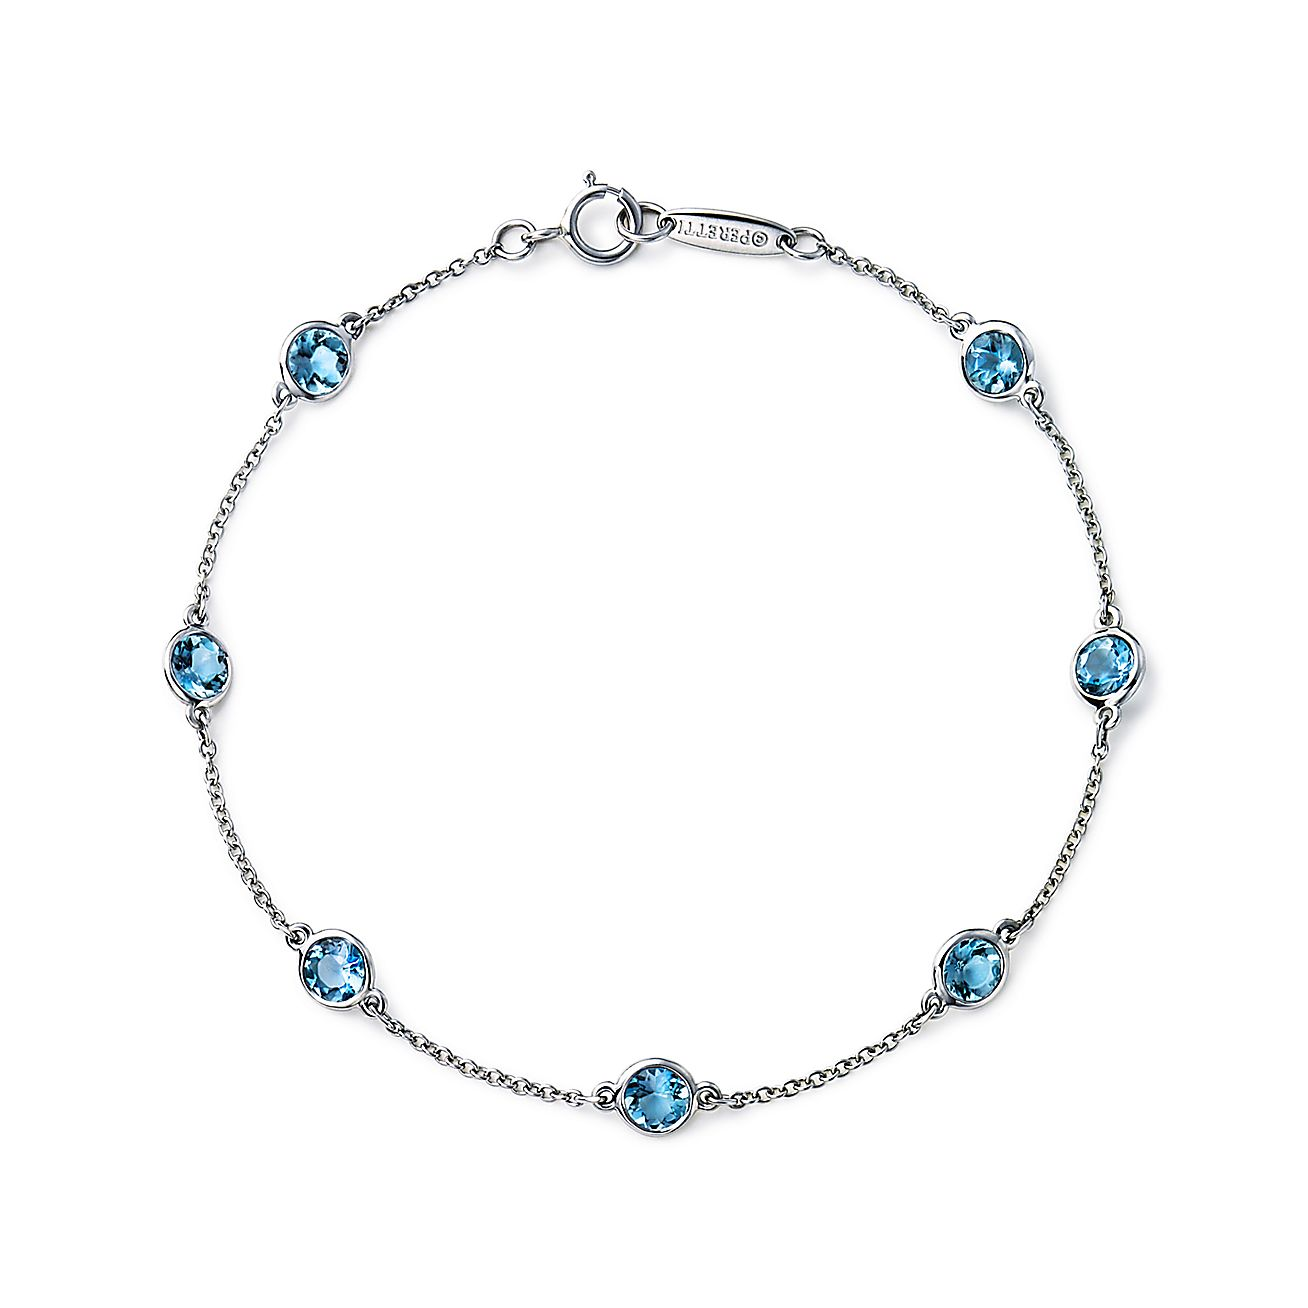 Elsa Peretti® Color by the Yard bracelet in platinum with